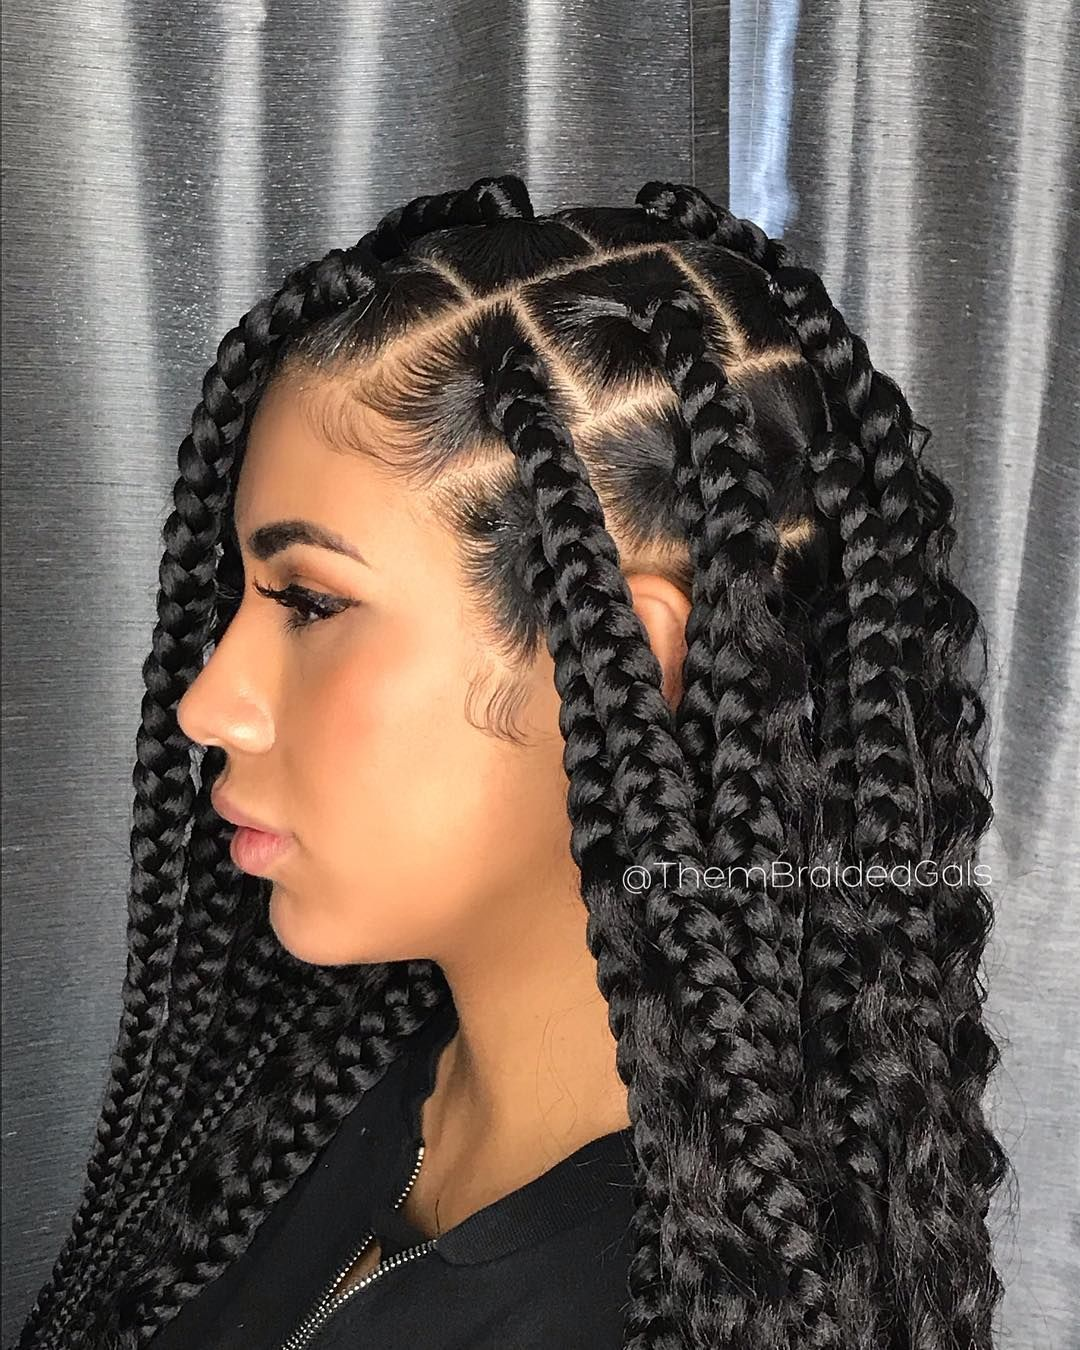 T H E M B R A I D E D G A L S On Instagram Large Goddess Box Braids My Clients Are So Gorgeous Swi Hair Styles Braided Hairstyles Box Braids Styling